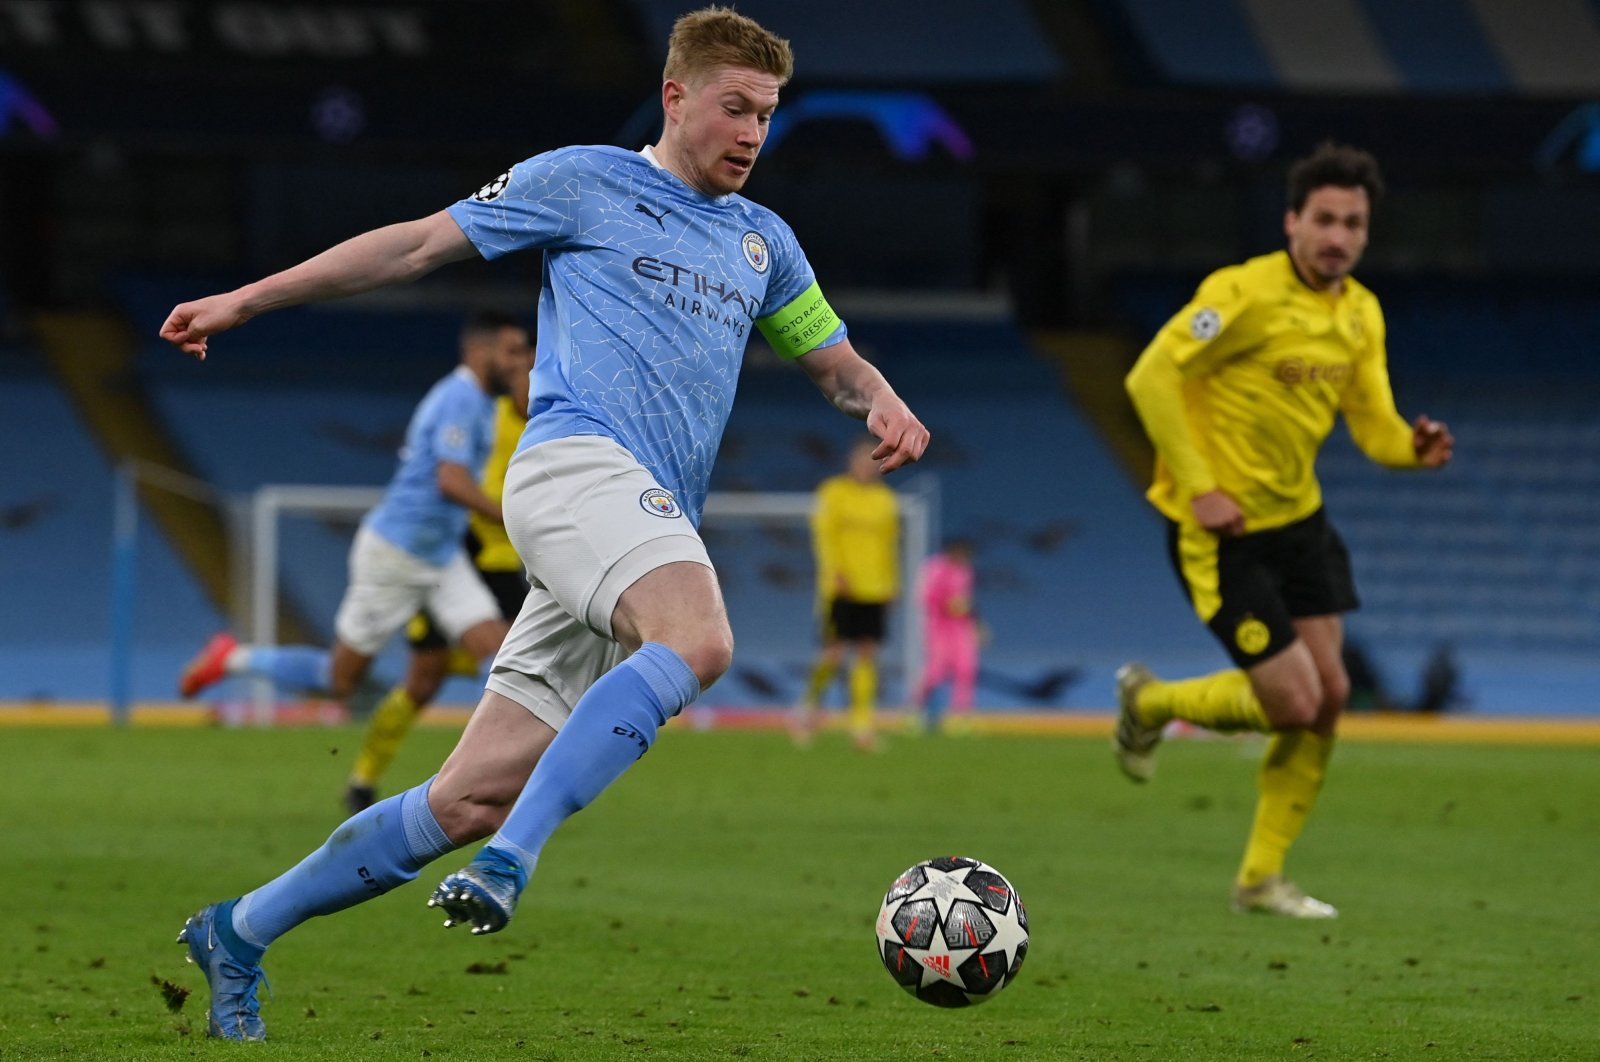 Manchester City's Belgian midfielder Kevin De Bruyne (L) runs with the ball during the UEFA Champions League first-leg, quarterfinal match against Borussia Dortmund at the Etihad Stadium, in Manchester, England, April 6, 2021. (AFP Photo)